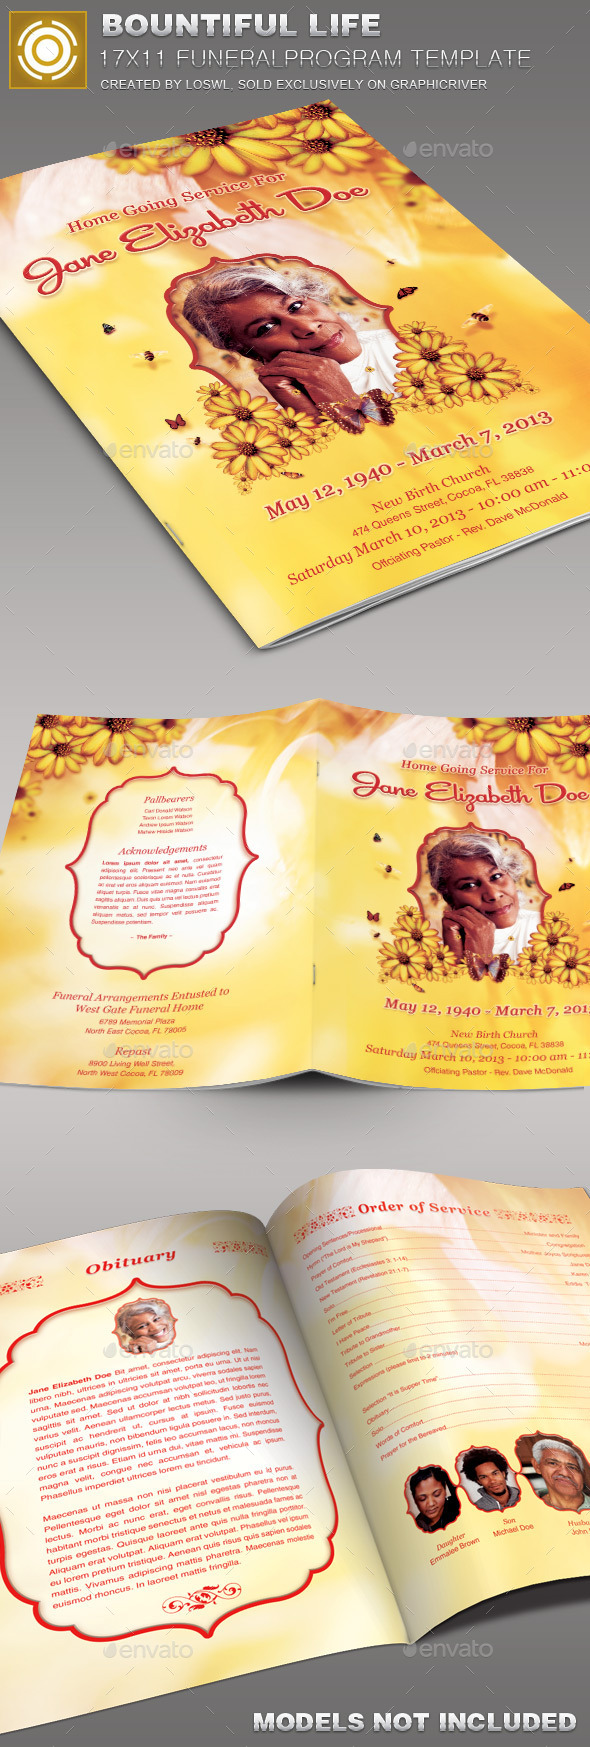 Bountiful Life Funeral Program Template-002 - Church Flyers